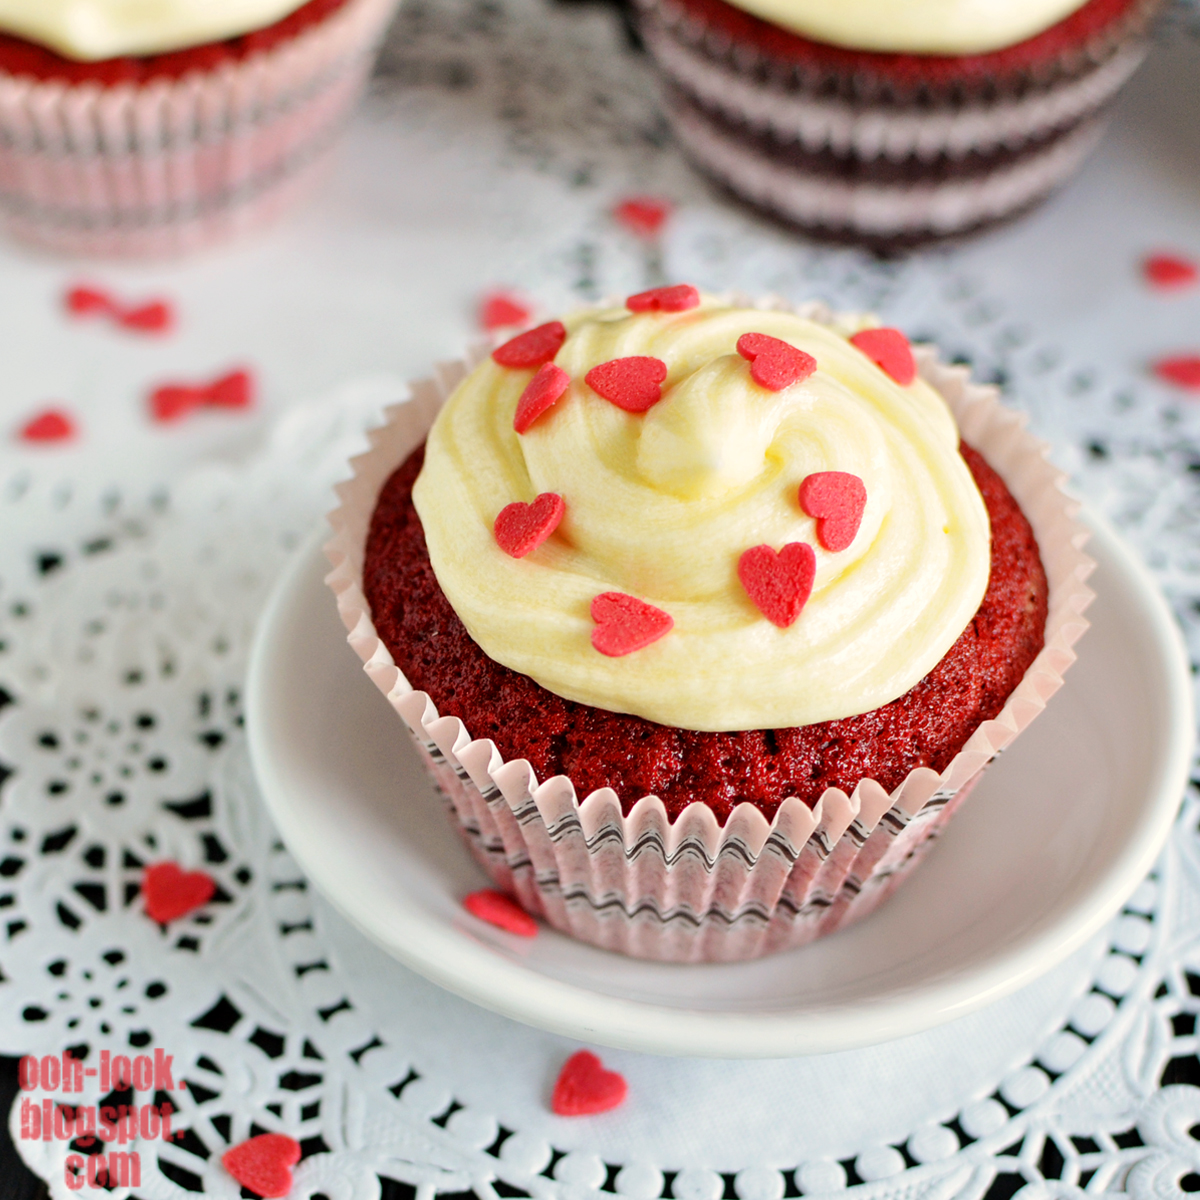 What Kind Of Icing Goes Good With Red Velvet Cake